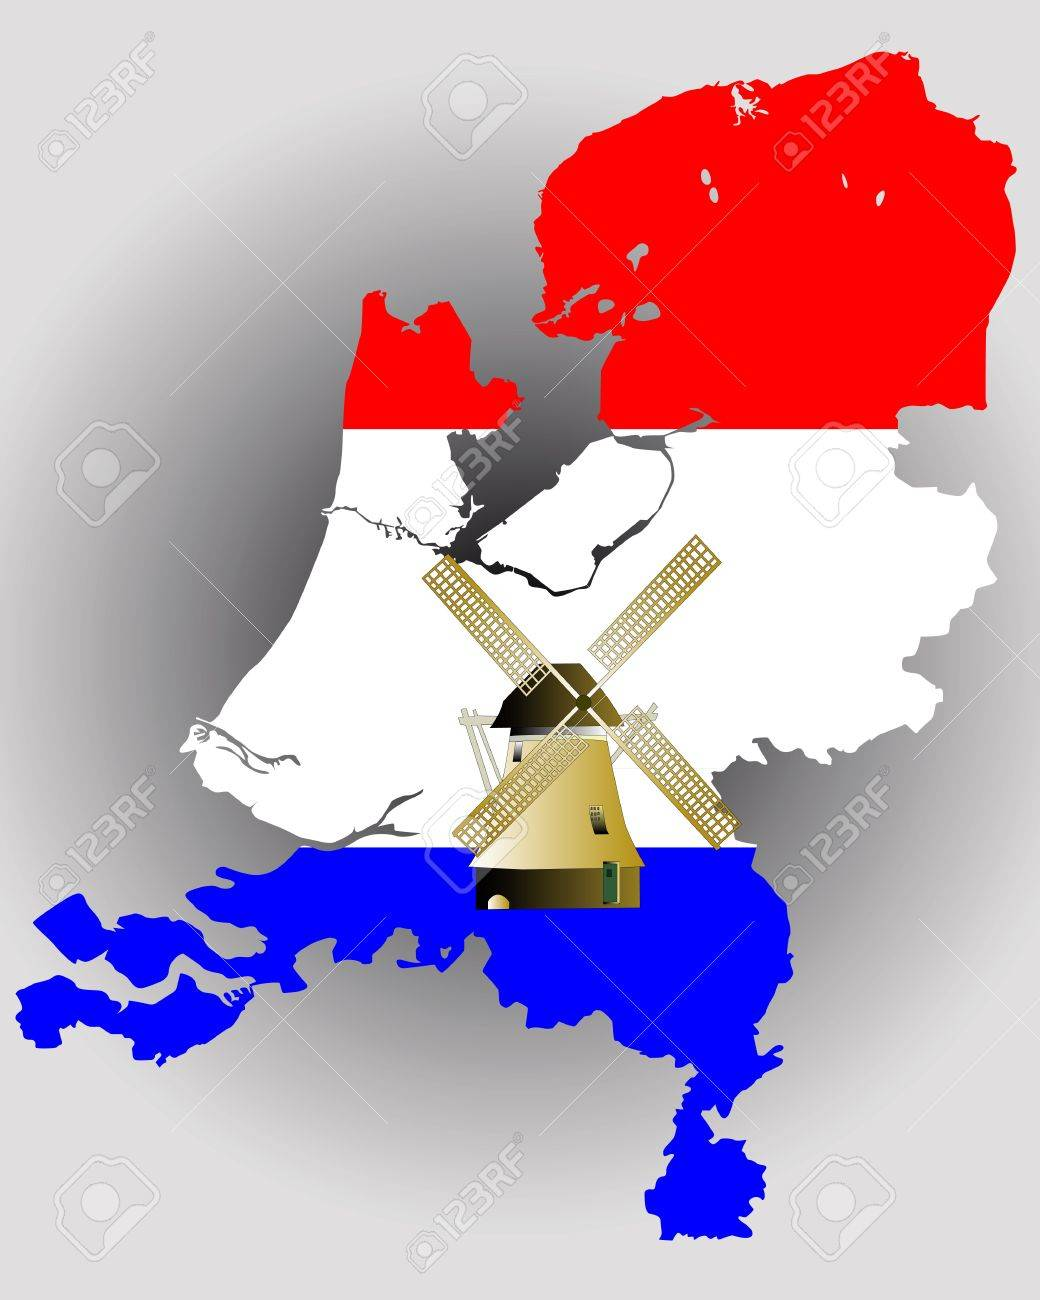 map of holland in the colors of the flag with a windmill on a